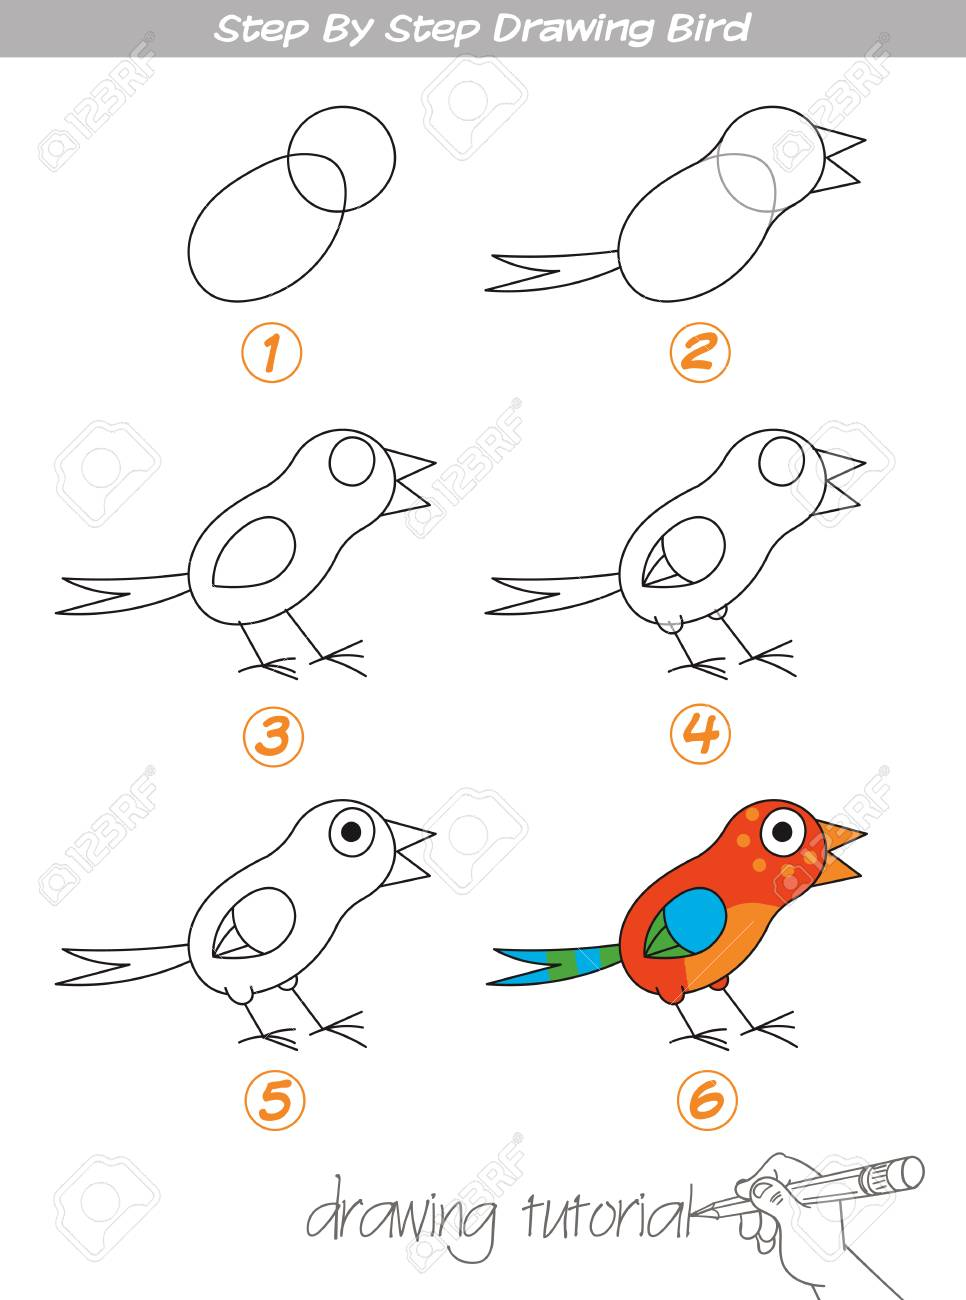 Drawing Tutorial Step By Step Drawing Bird Easy To Drawing